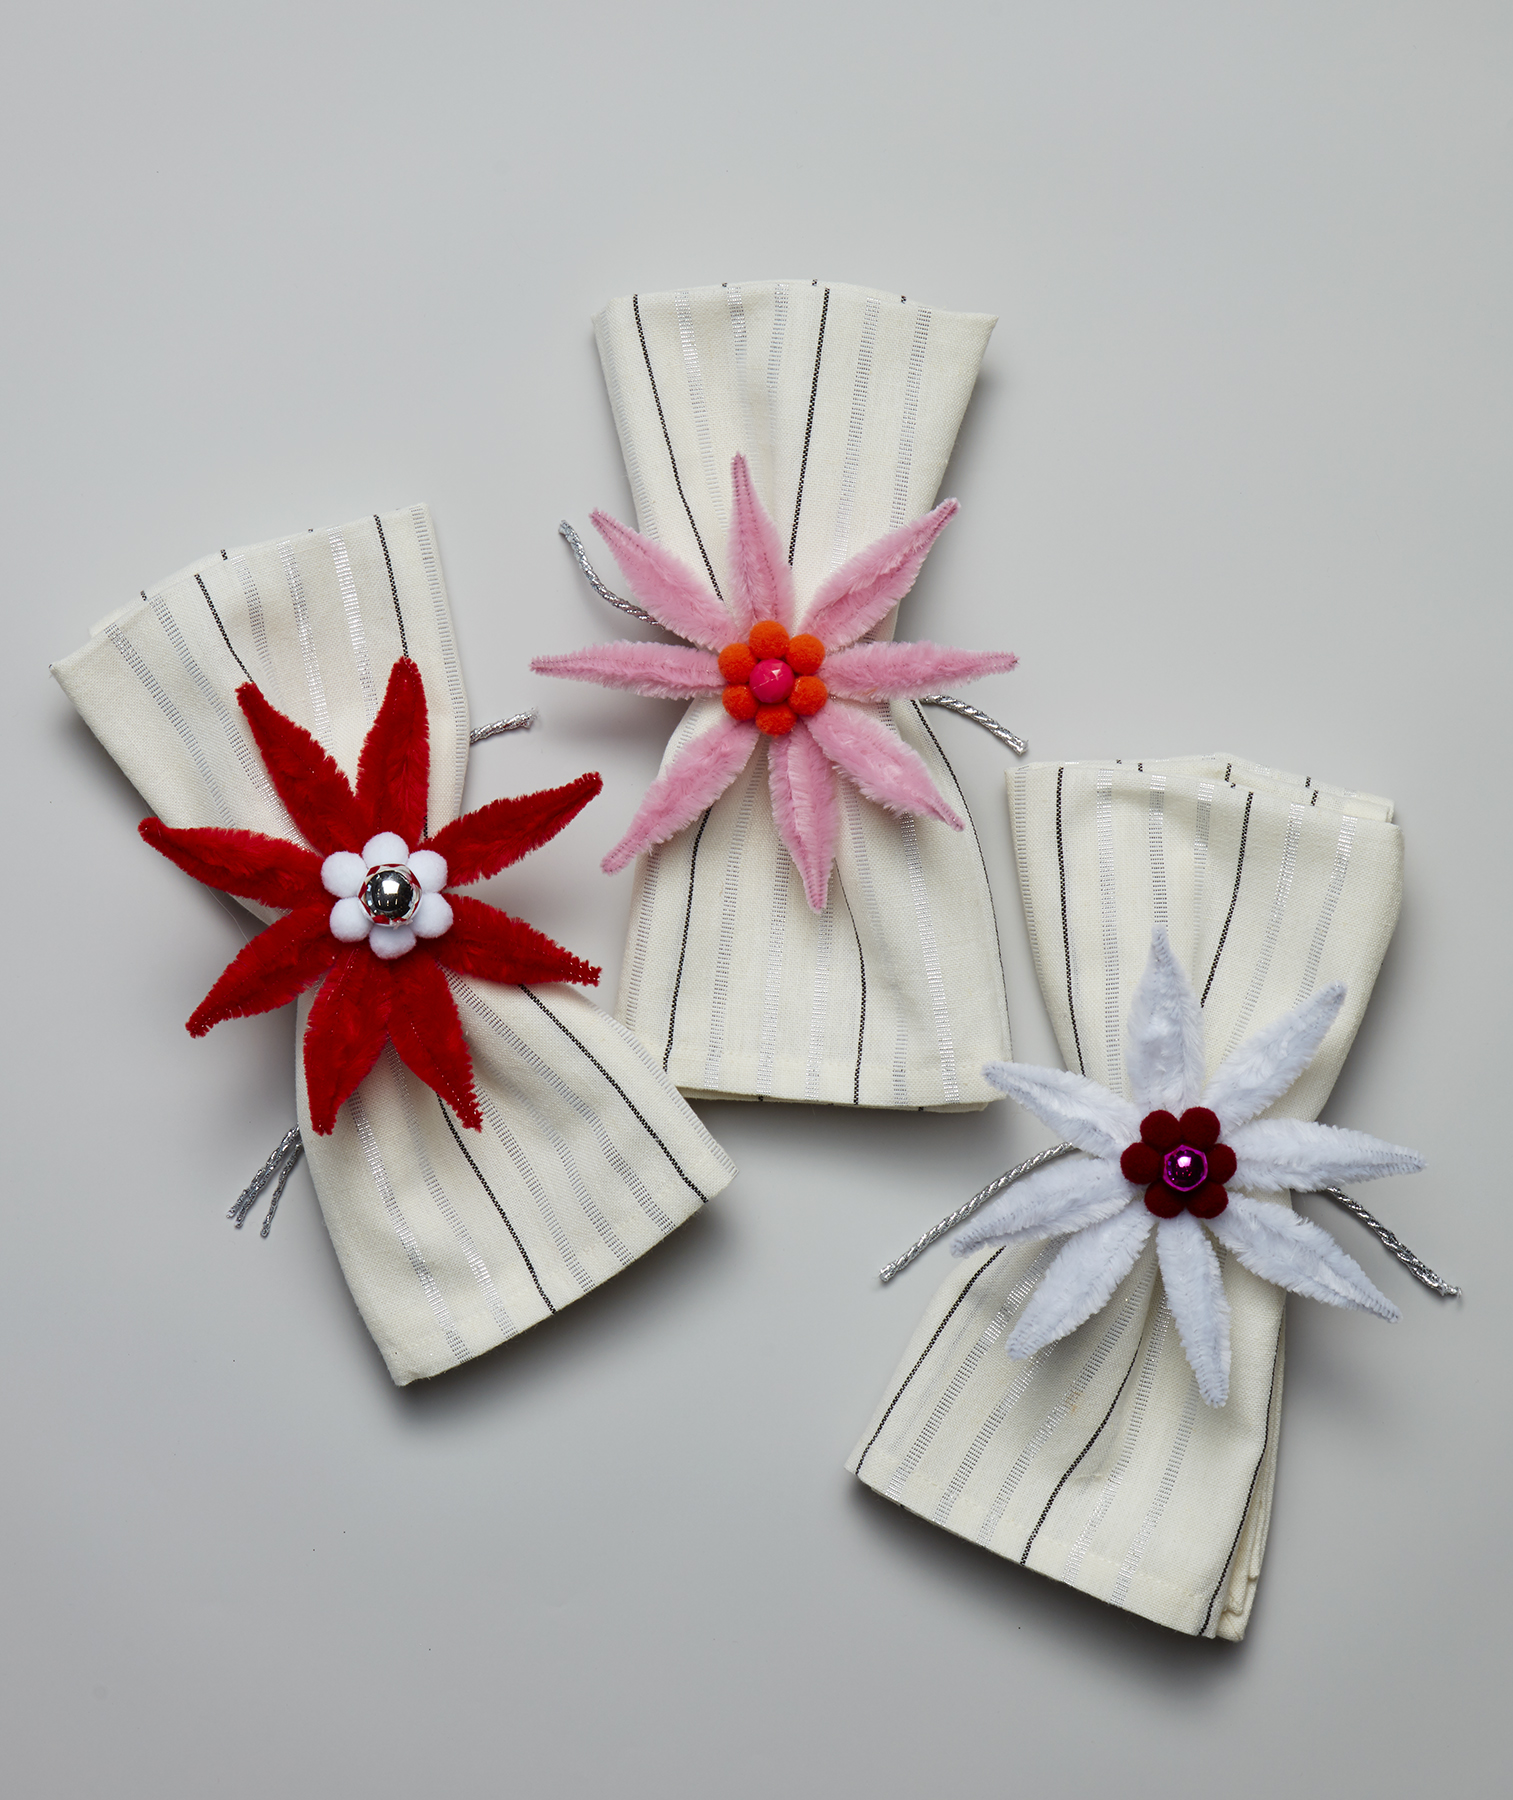 Christmas crafts ideas - Poinsettia Napkin Rings